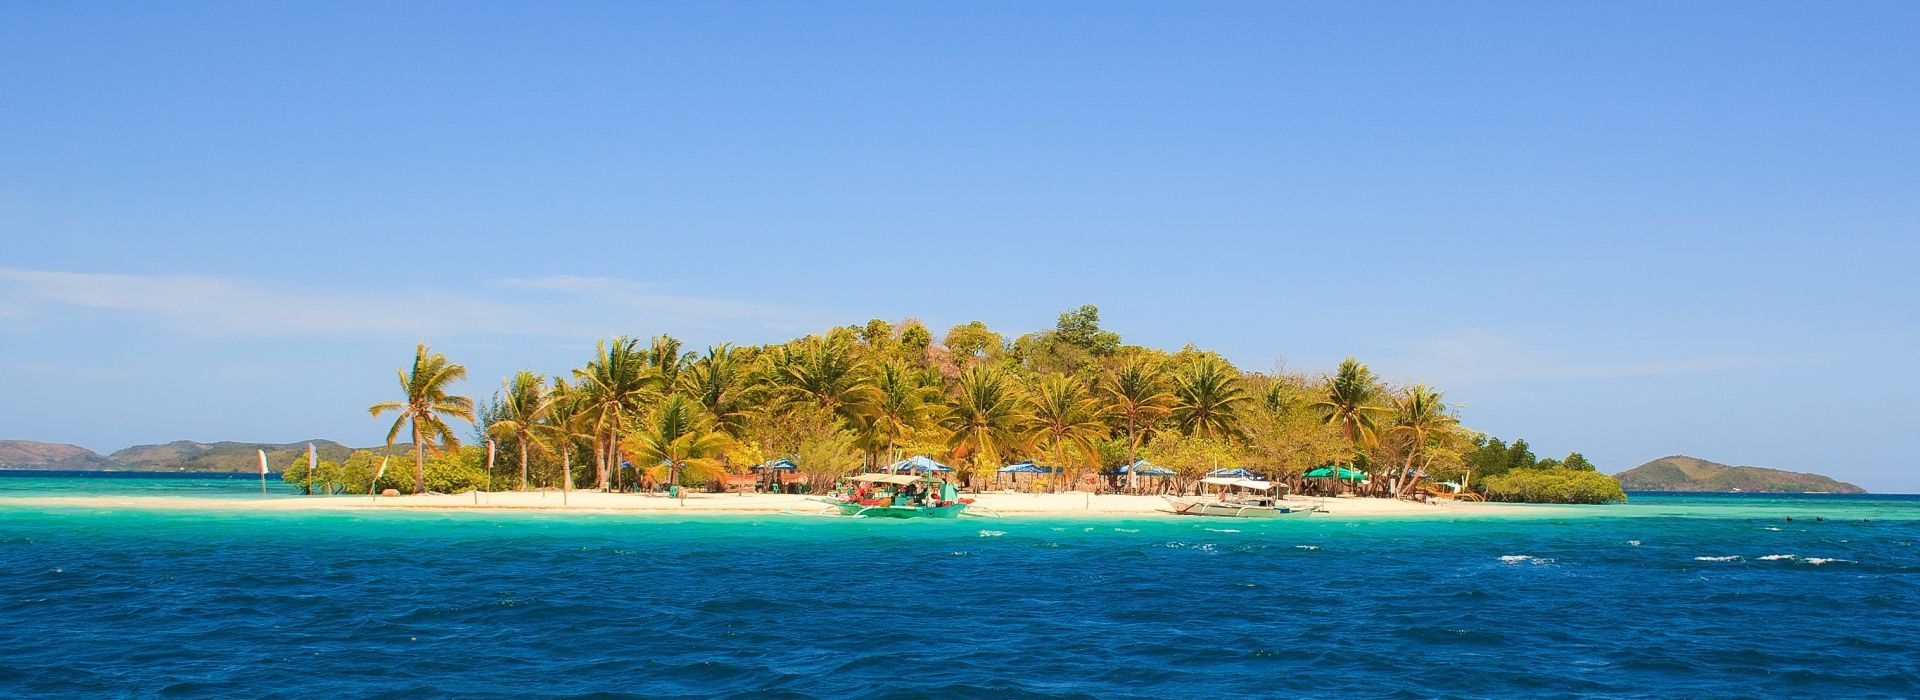 Scuba diving Tours in Philippines